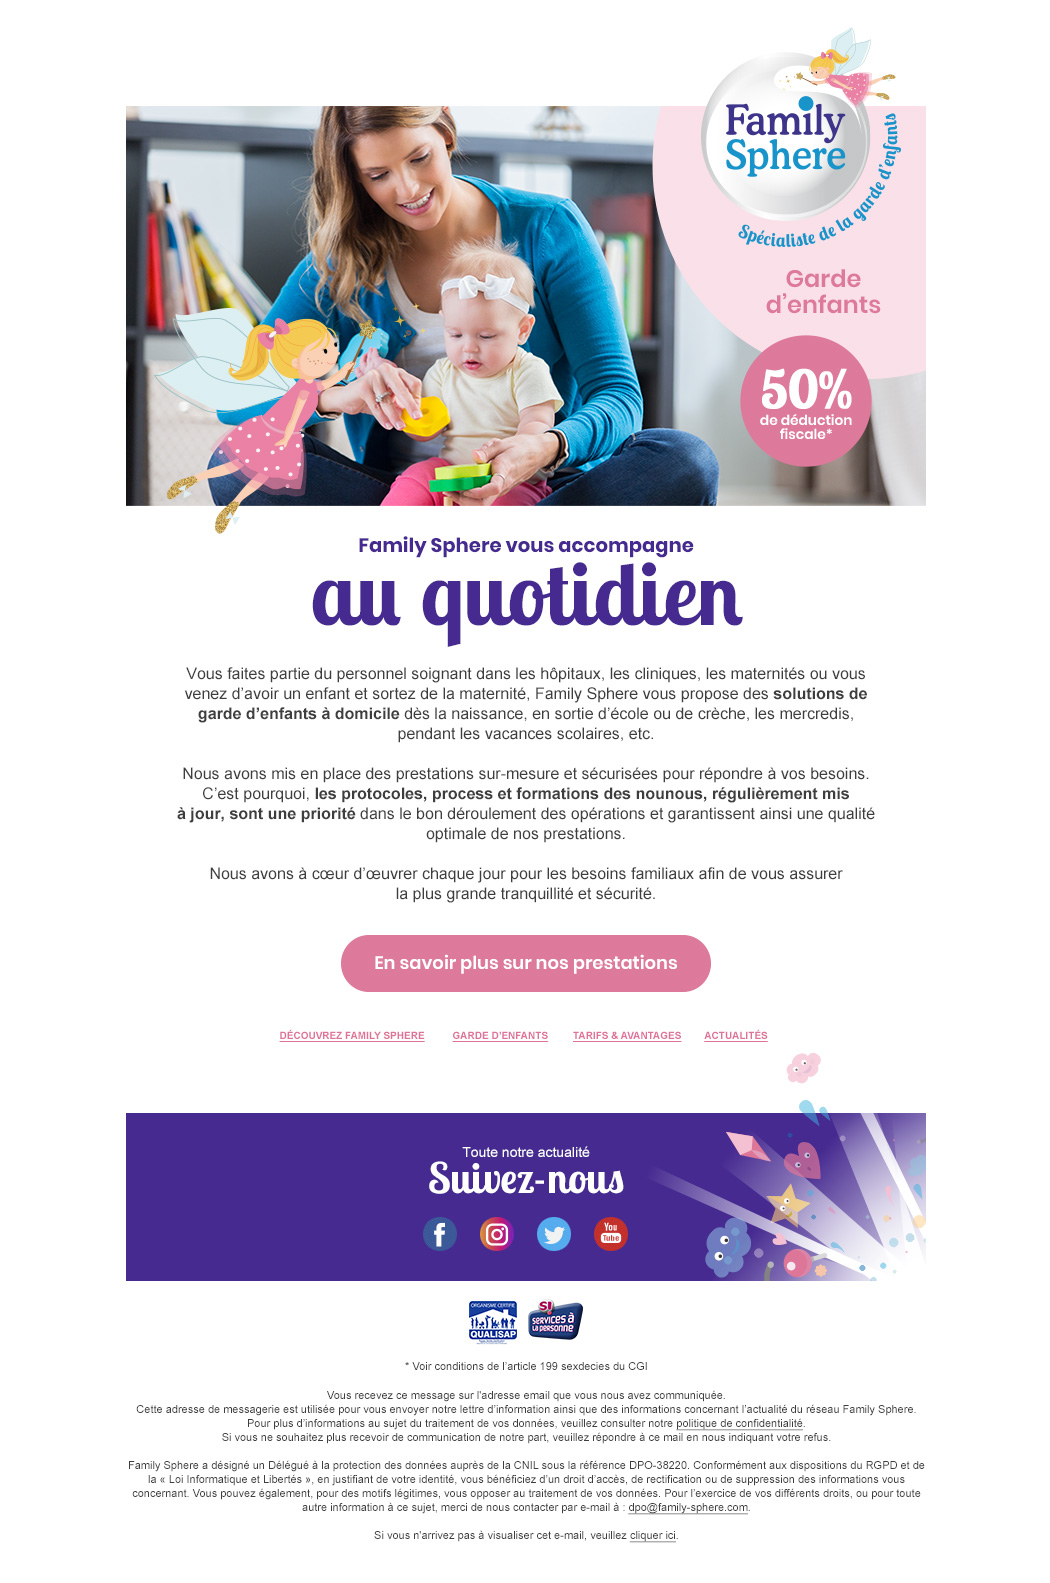 Email FamilySphere Clinique Maternite